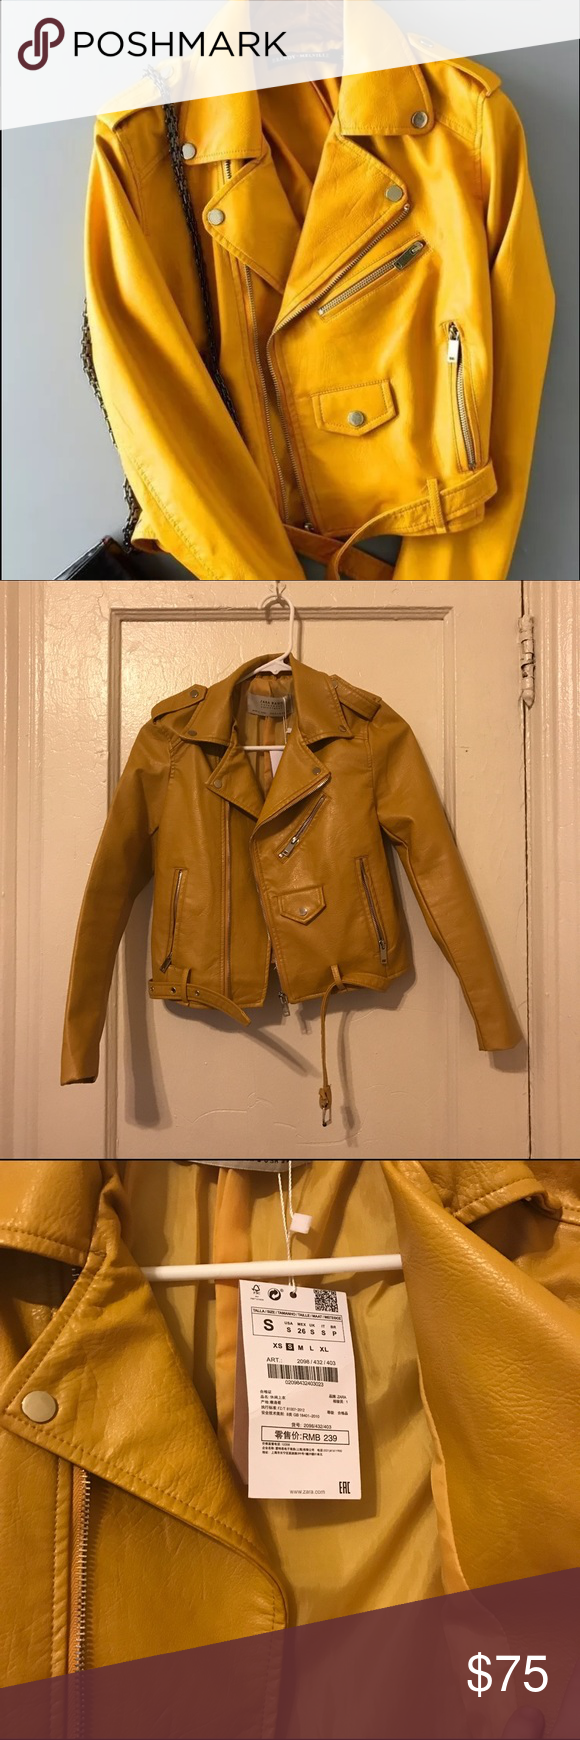 Yellow faux leather jacket NWT Leather jacket, Faux